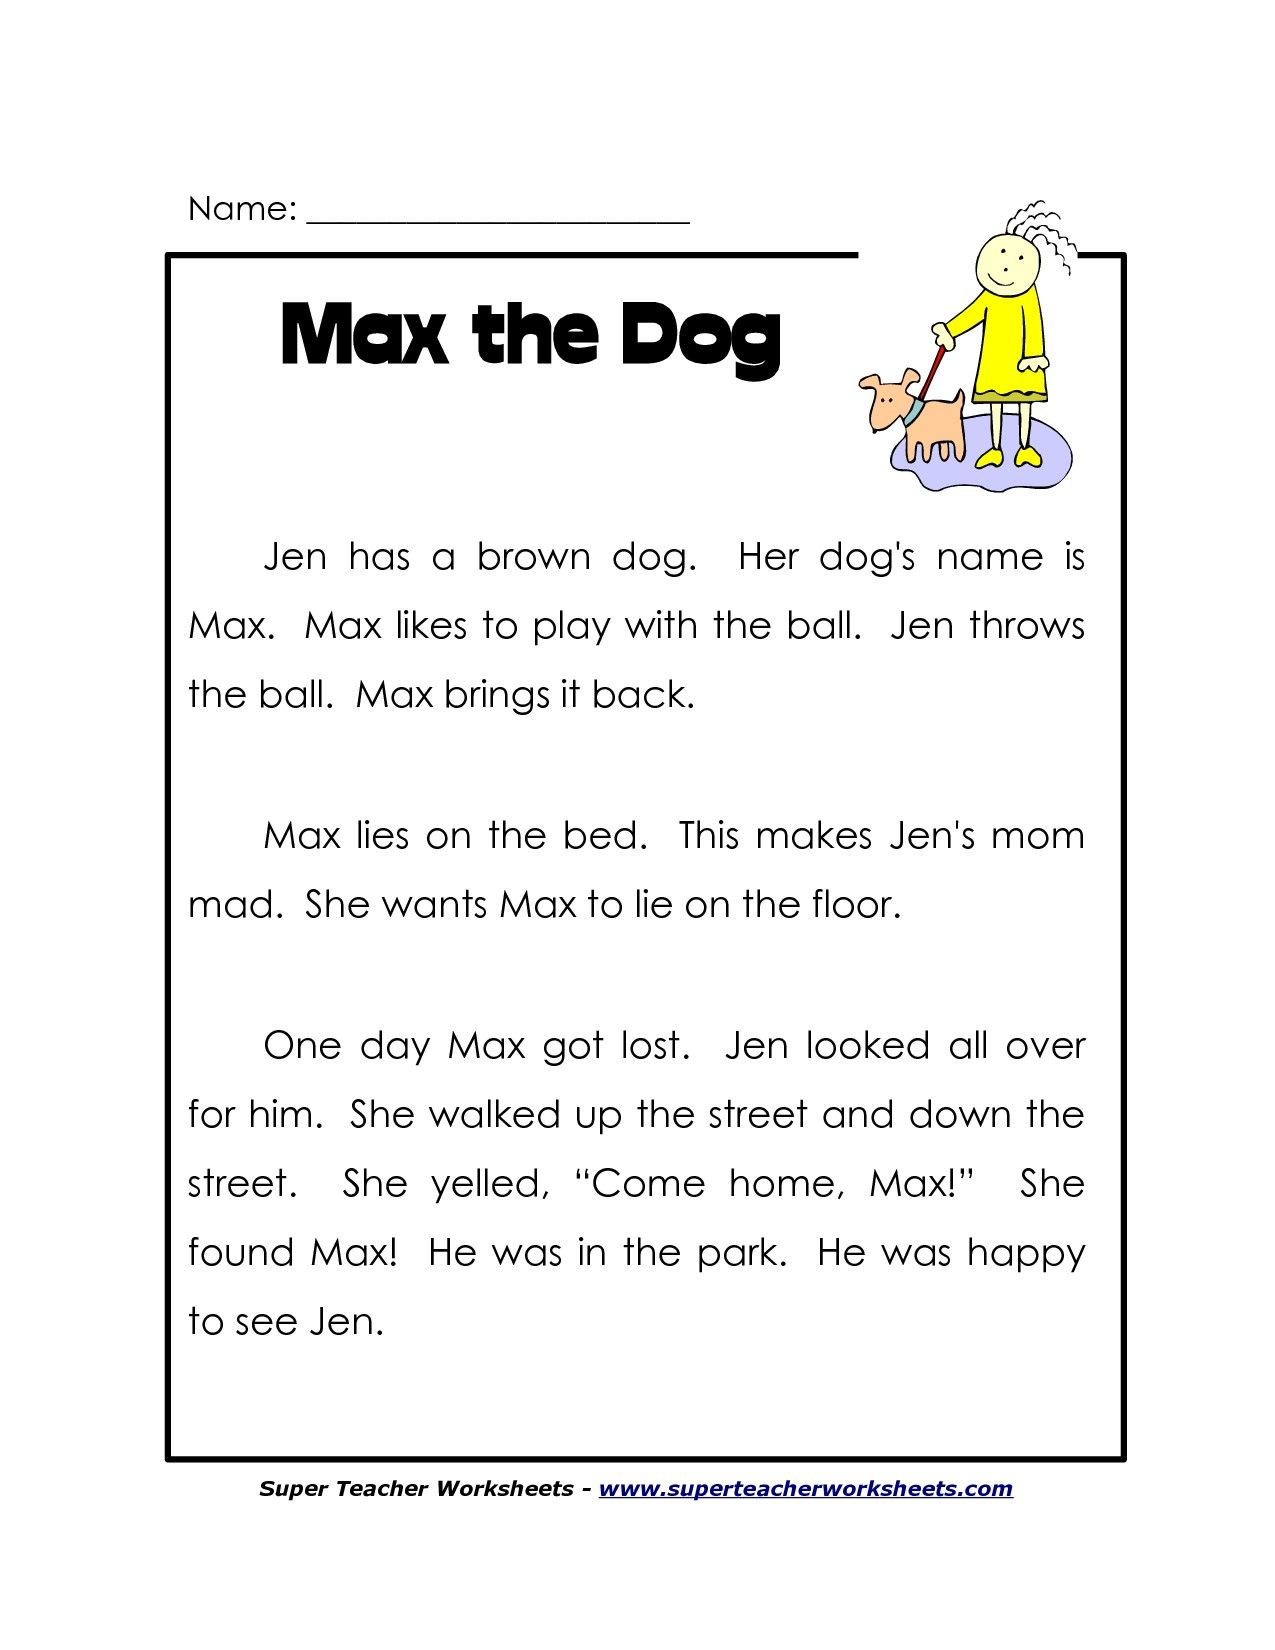 Worksheets Readings Worksheets Printables 1st grade reading worksheets free lots more on superteacherworksheets com